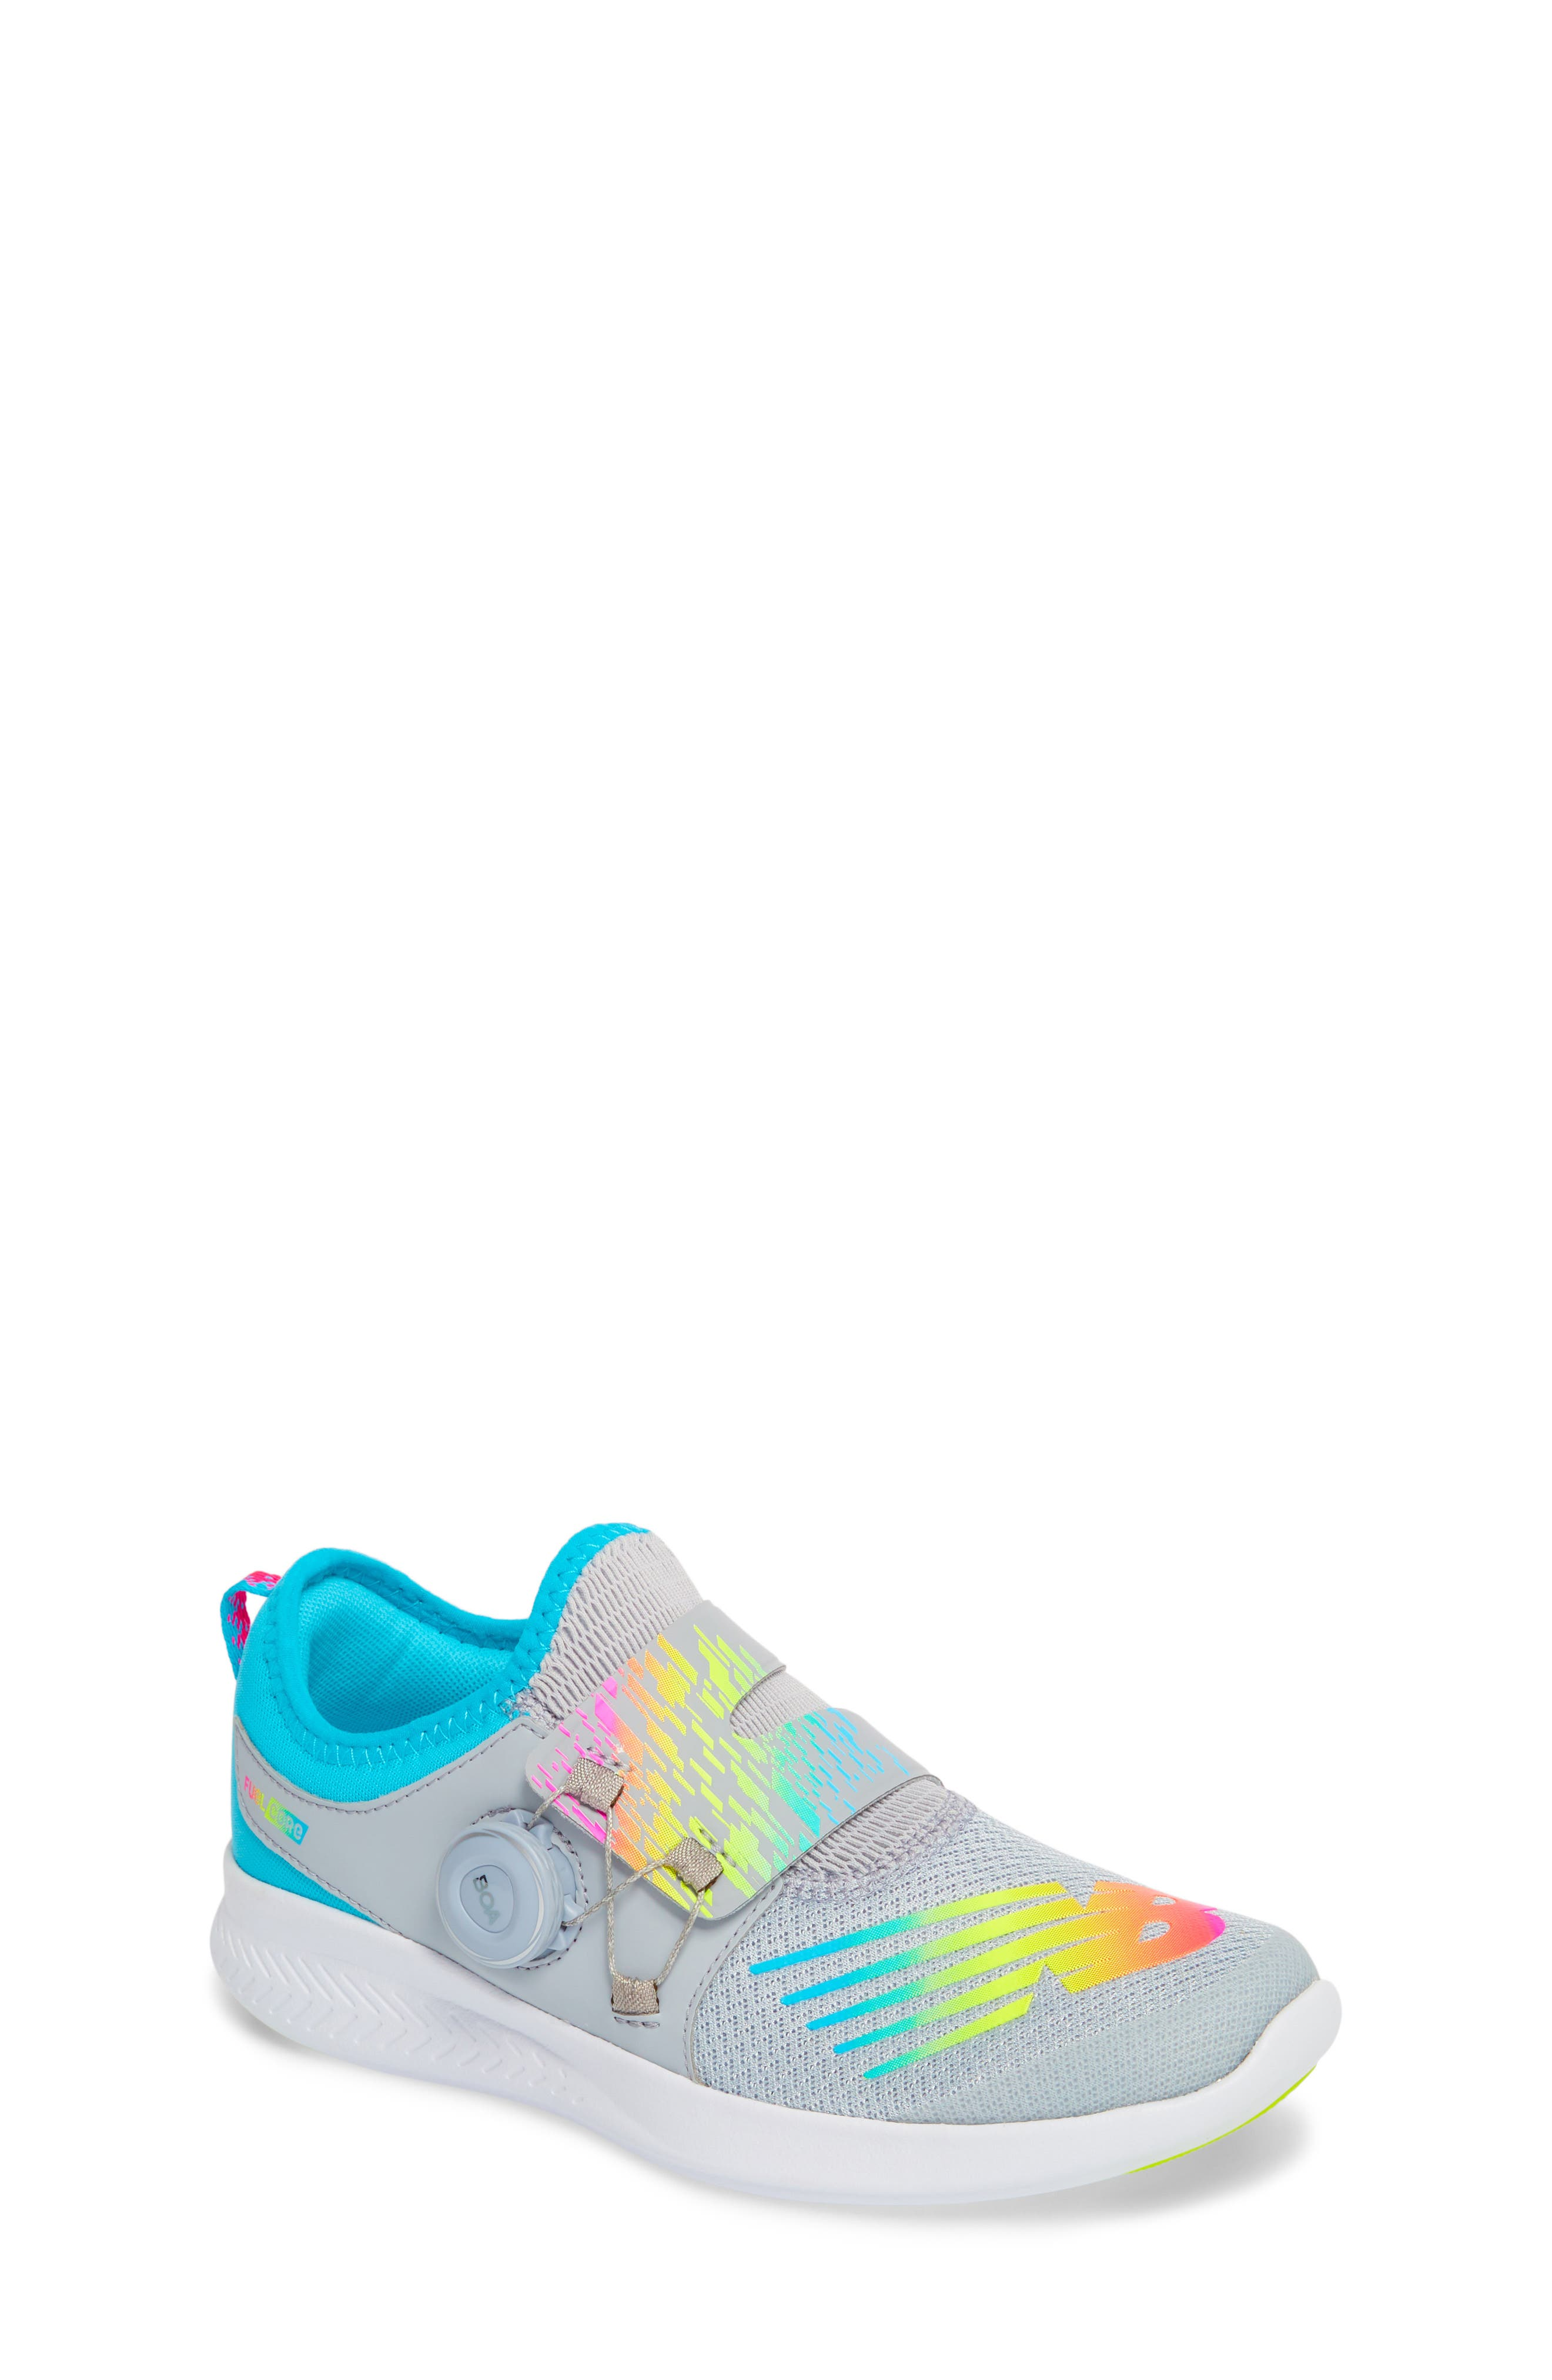 BKO Running Shoe,                             Main thumbnail 2, color,